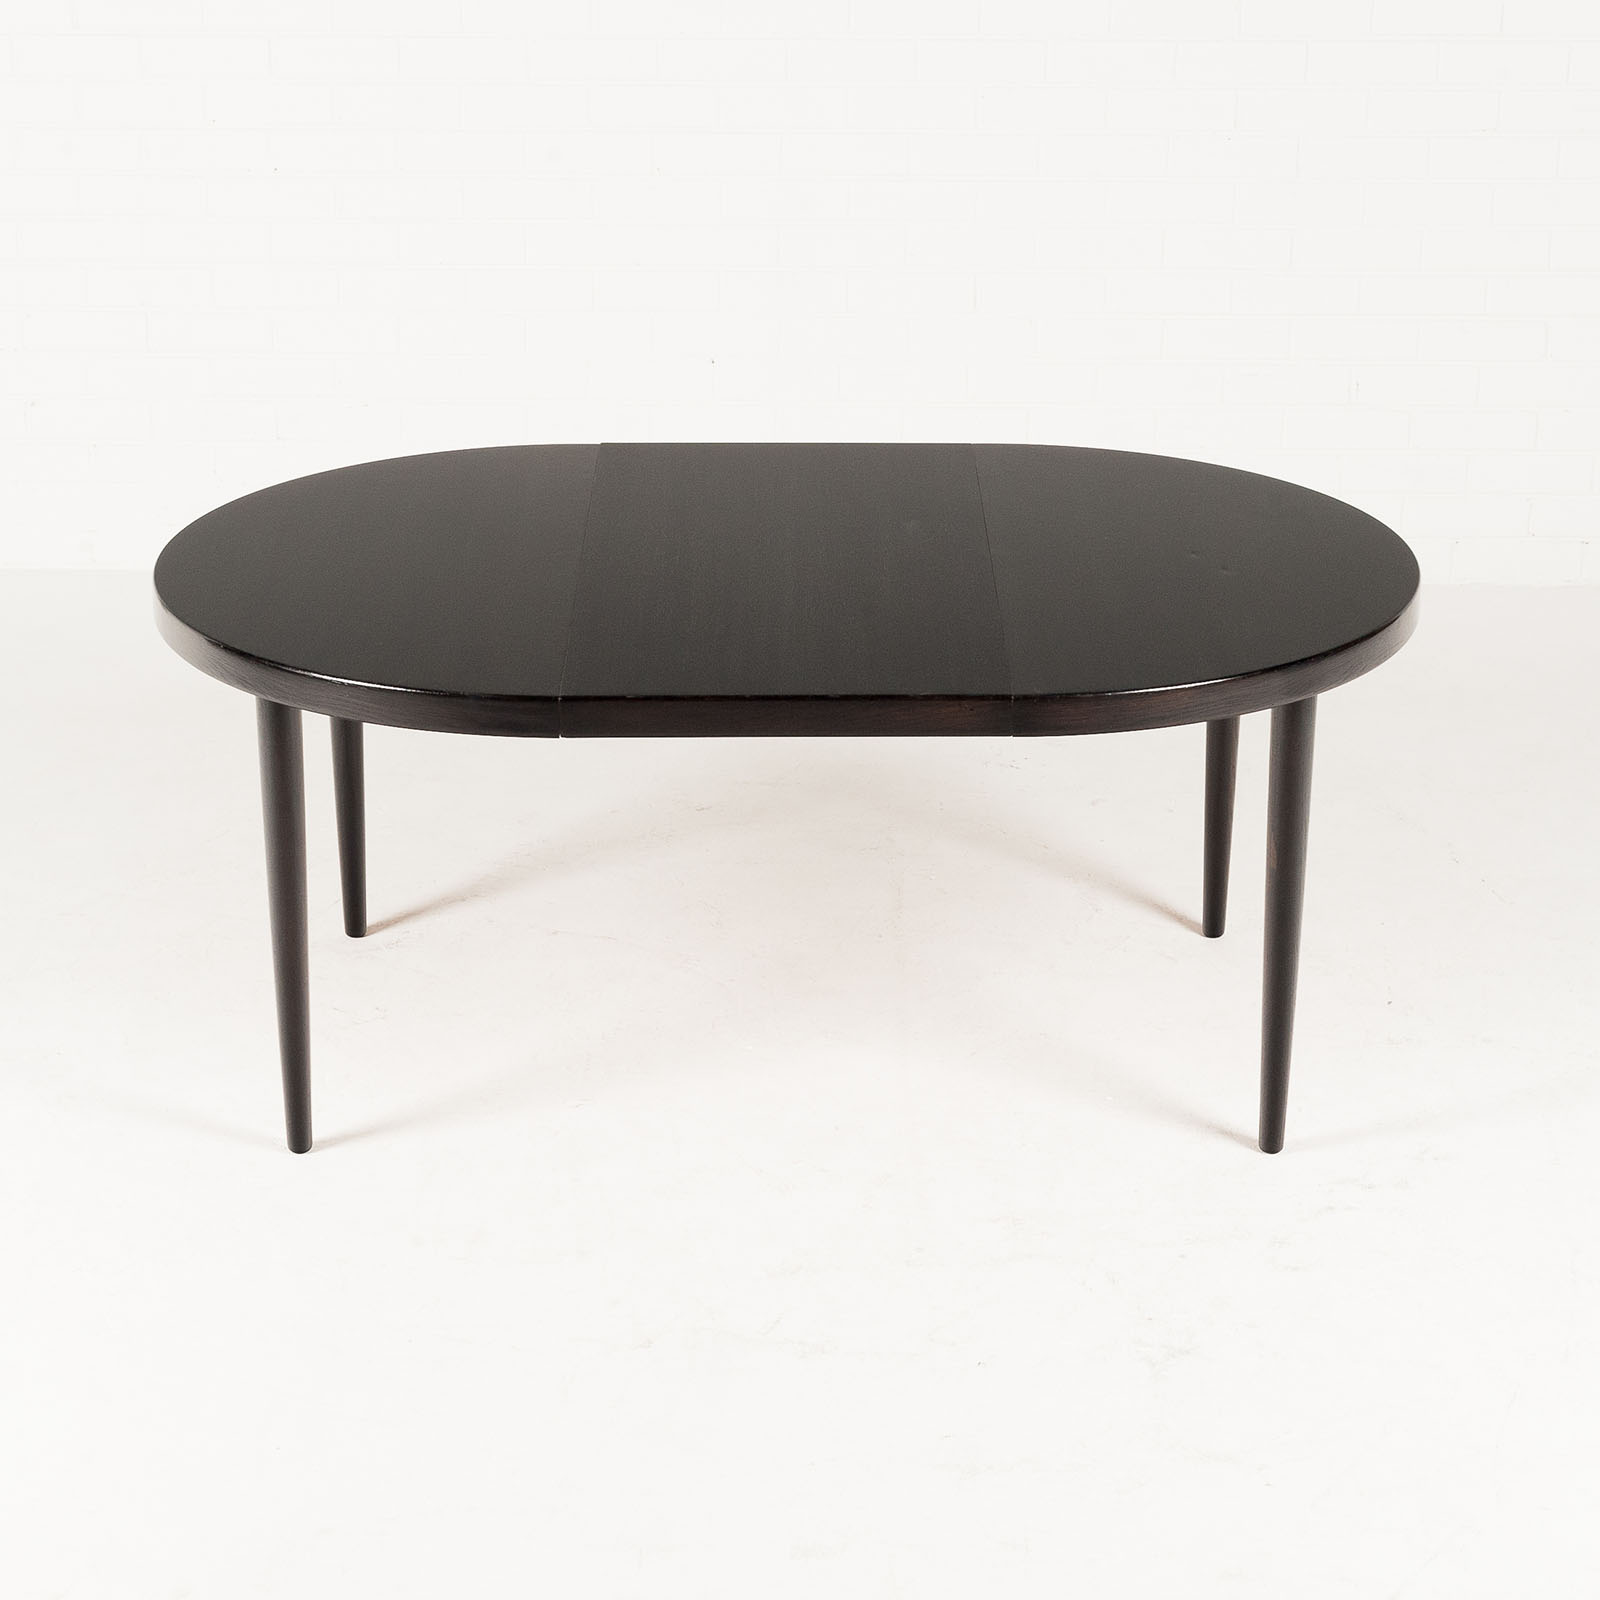 Round Dining Table By Kai Kristiansen In Stained Oak With 1 Extension 1960s Denmark 03